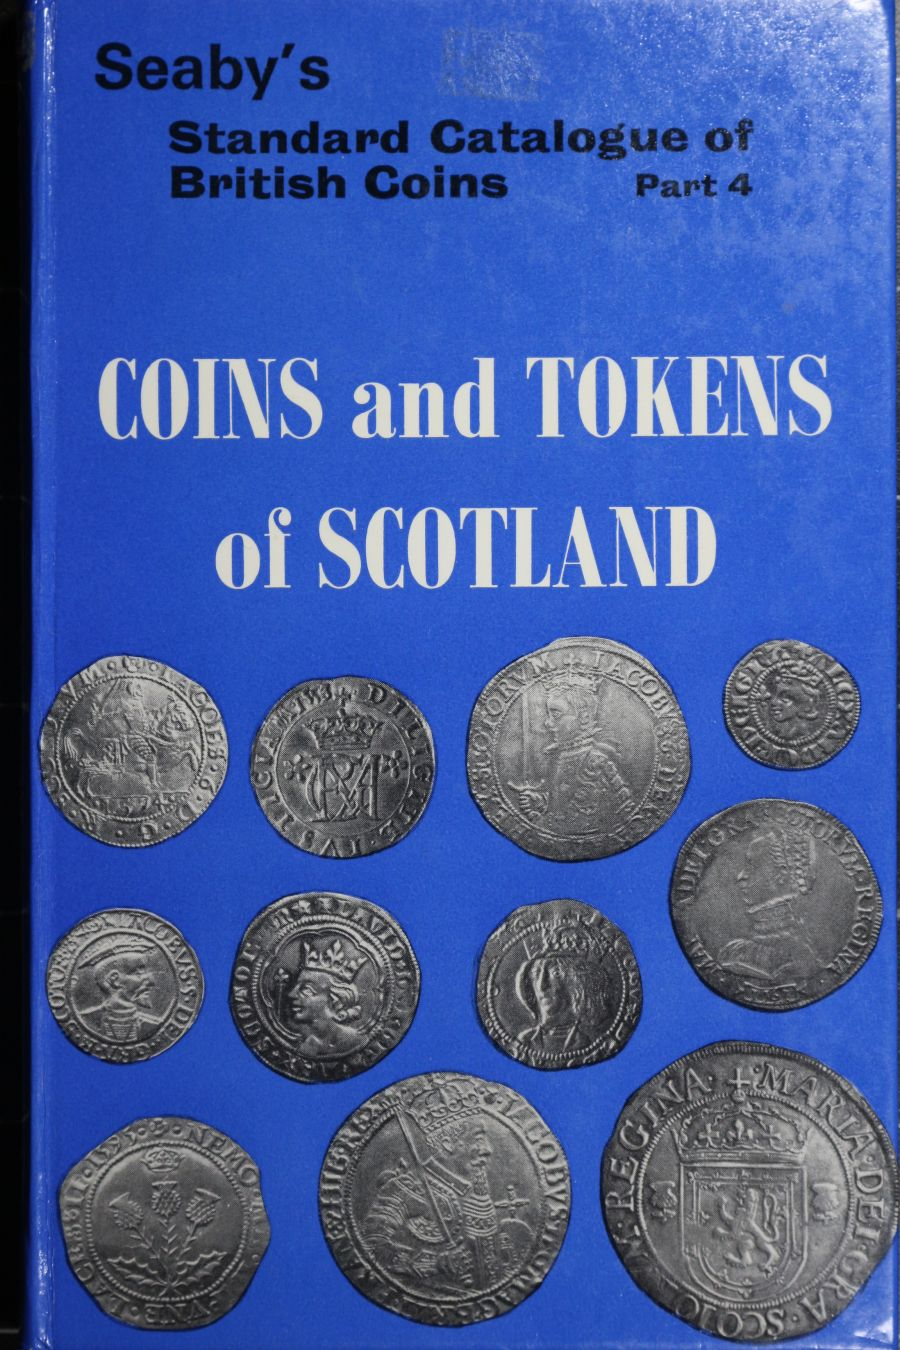 Coins and tokens of Scotland, Seaby's, First edition